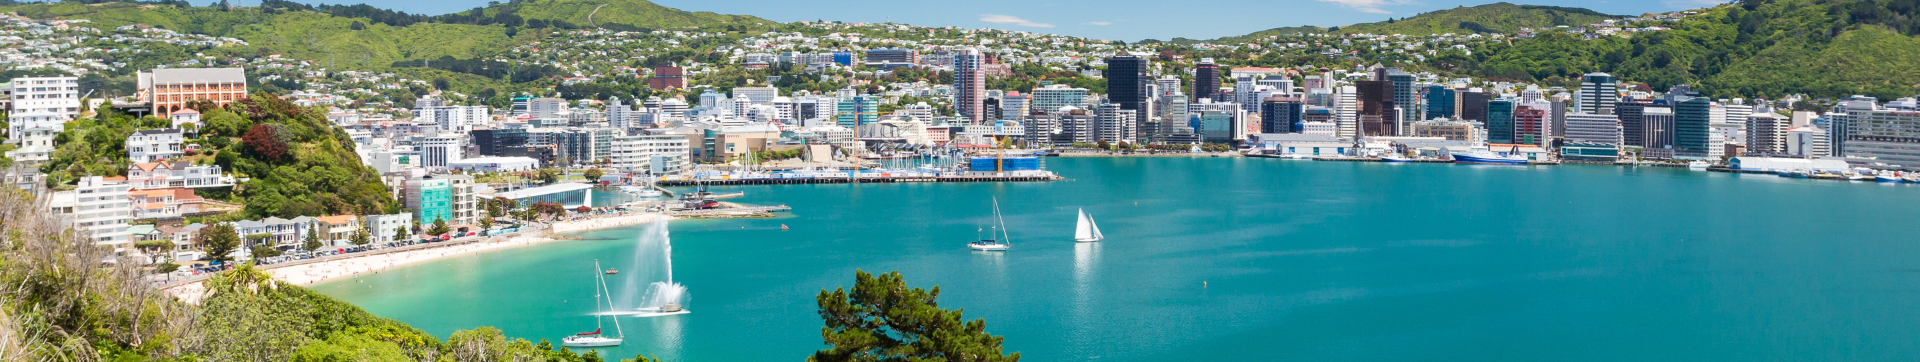 Kia Ora! Important details for your arrival to New Zealand